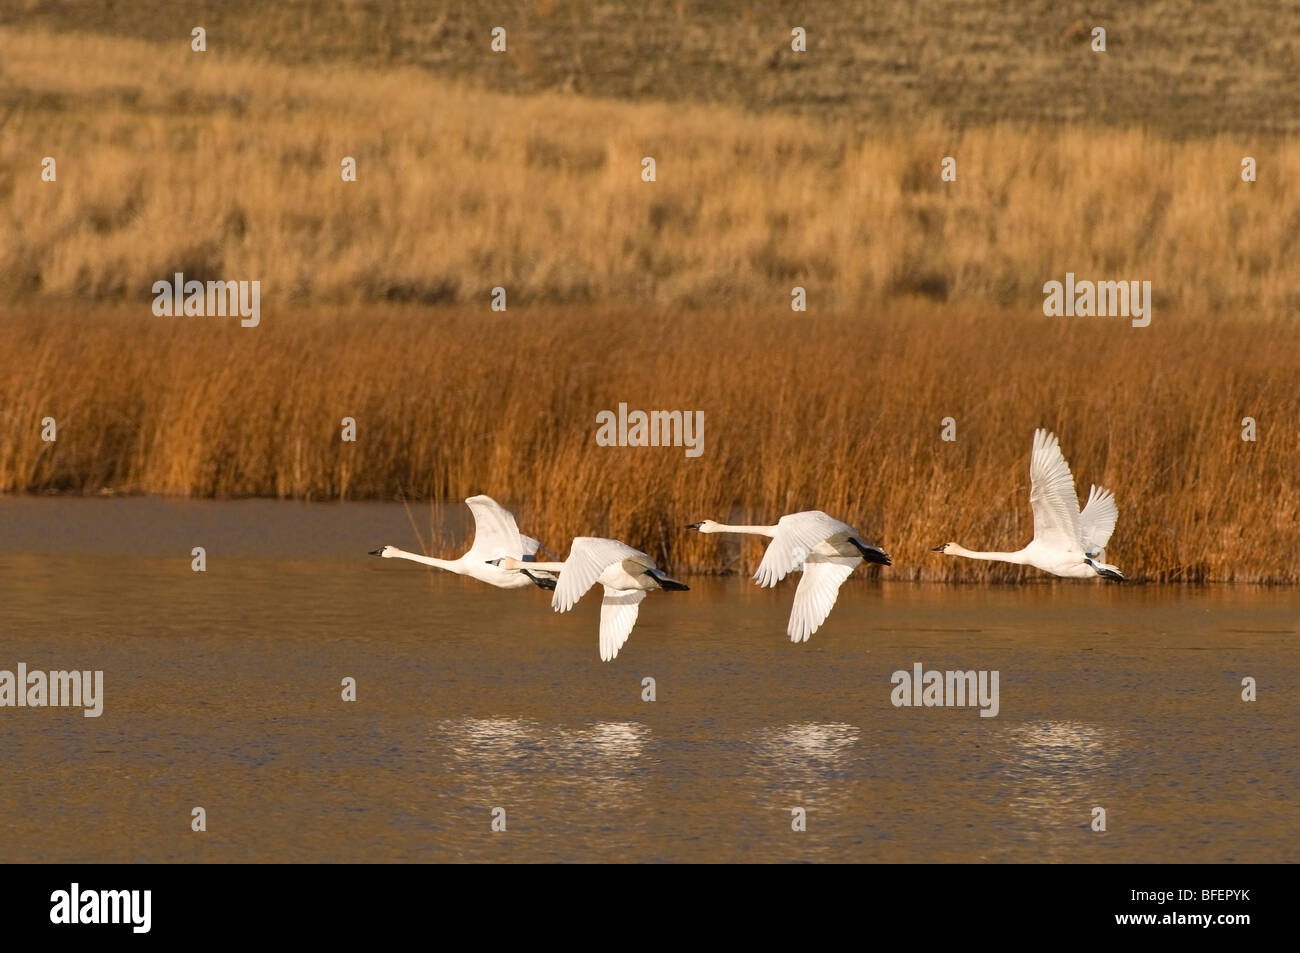 A group of Trumpeter swans (Cygnus buccinator) take flight south to escape winter, near Kamloops, British Columbia, Stock Photo